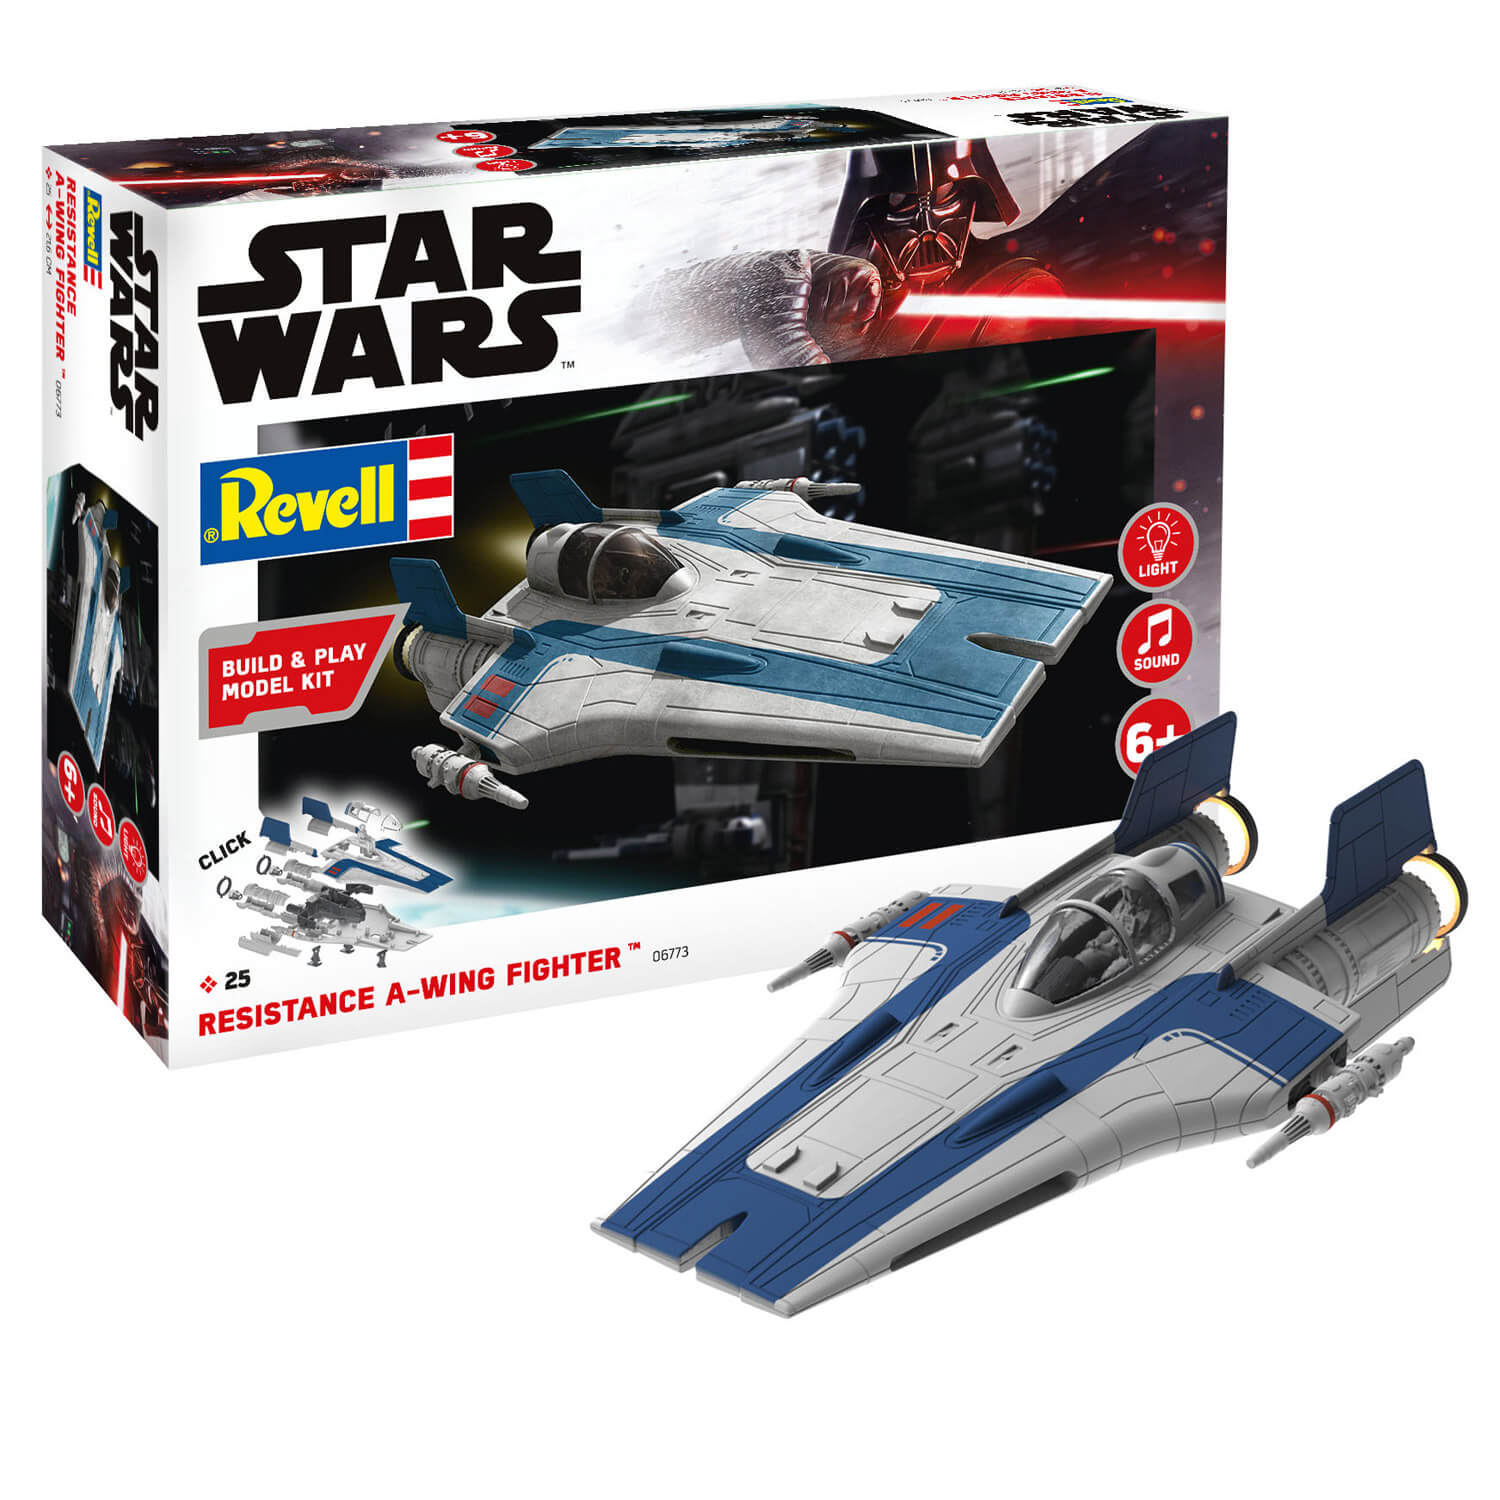 Maquette Star Wars : Build & Play : Resistance A-wing Fighter, Bleu